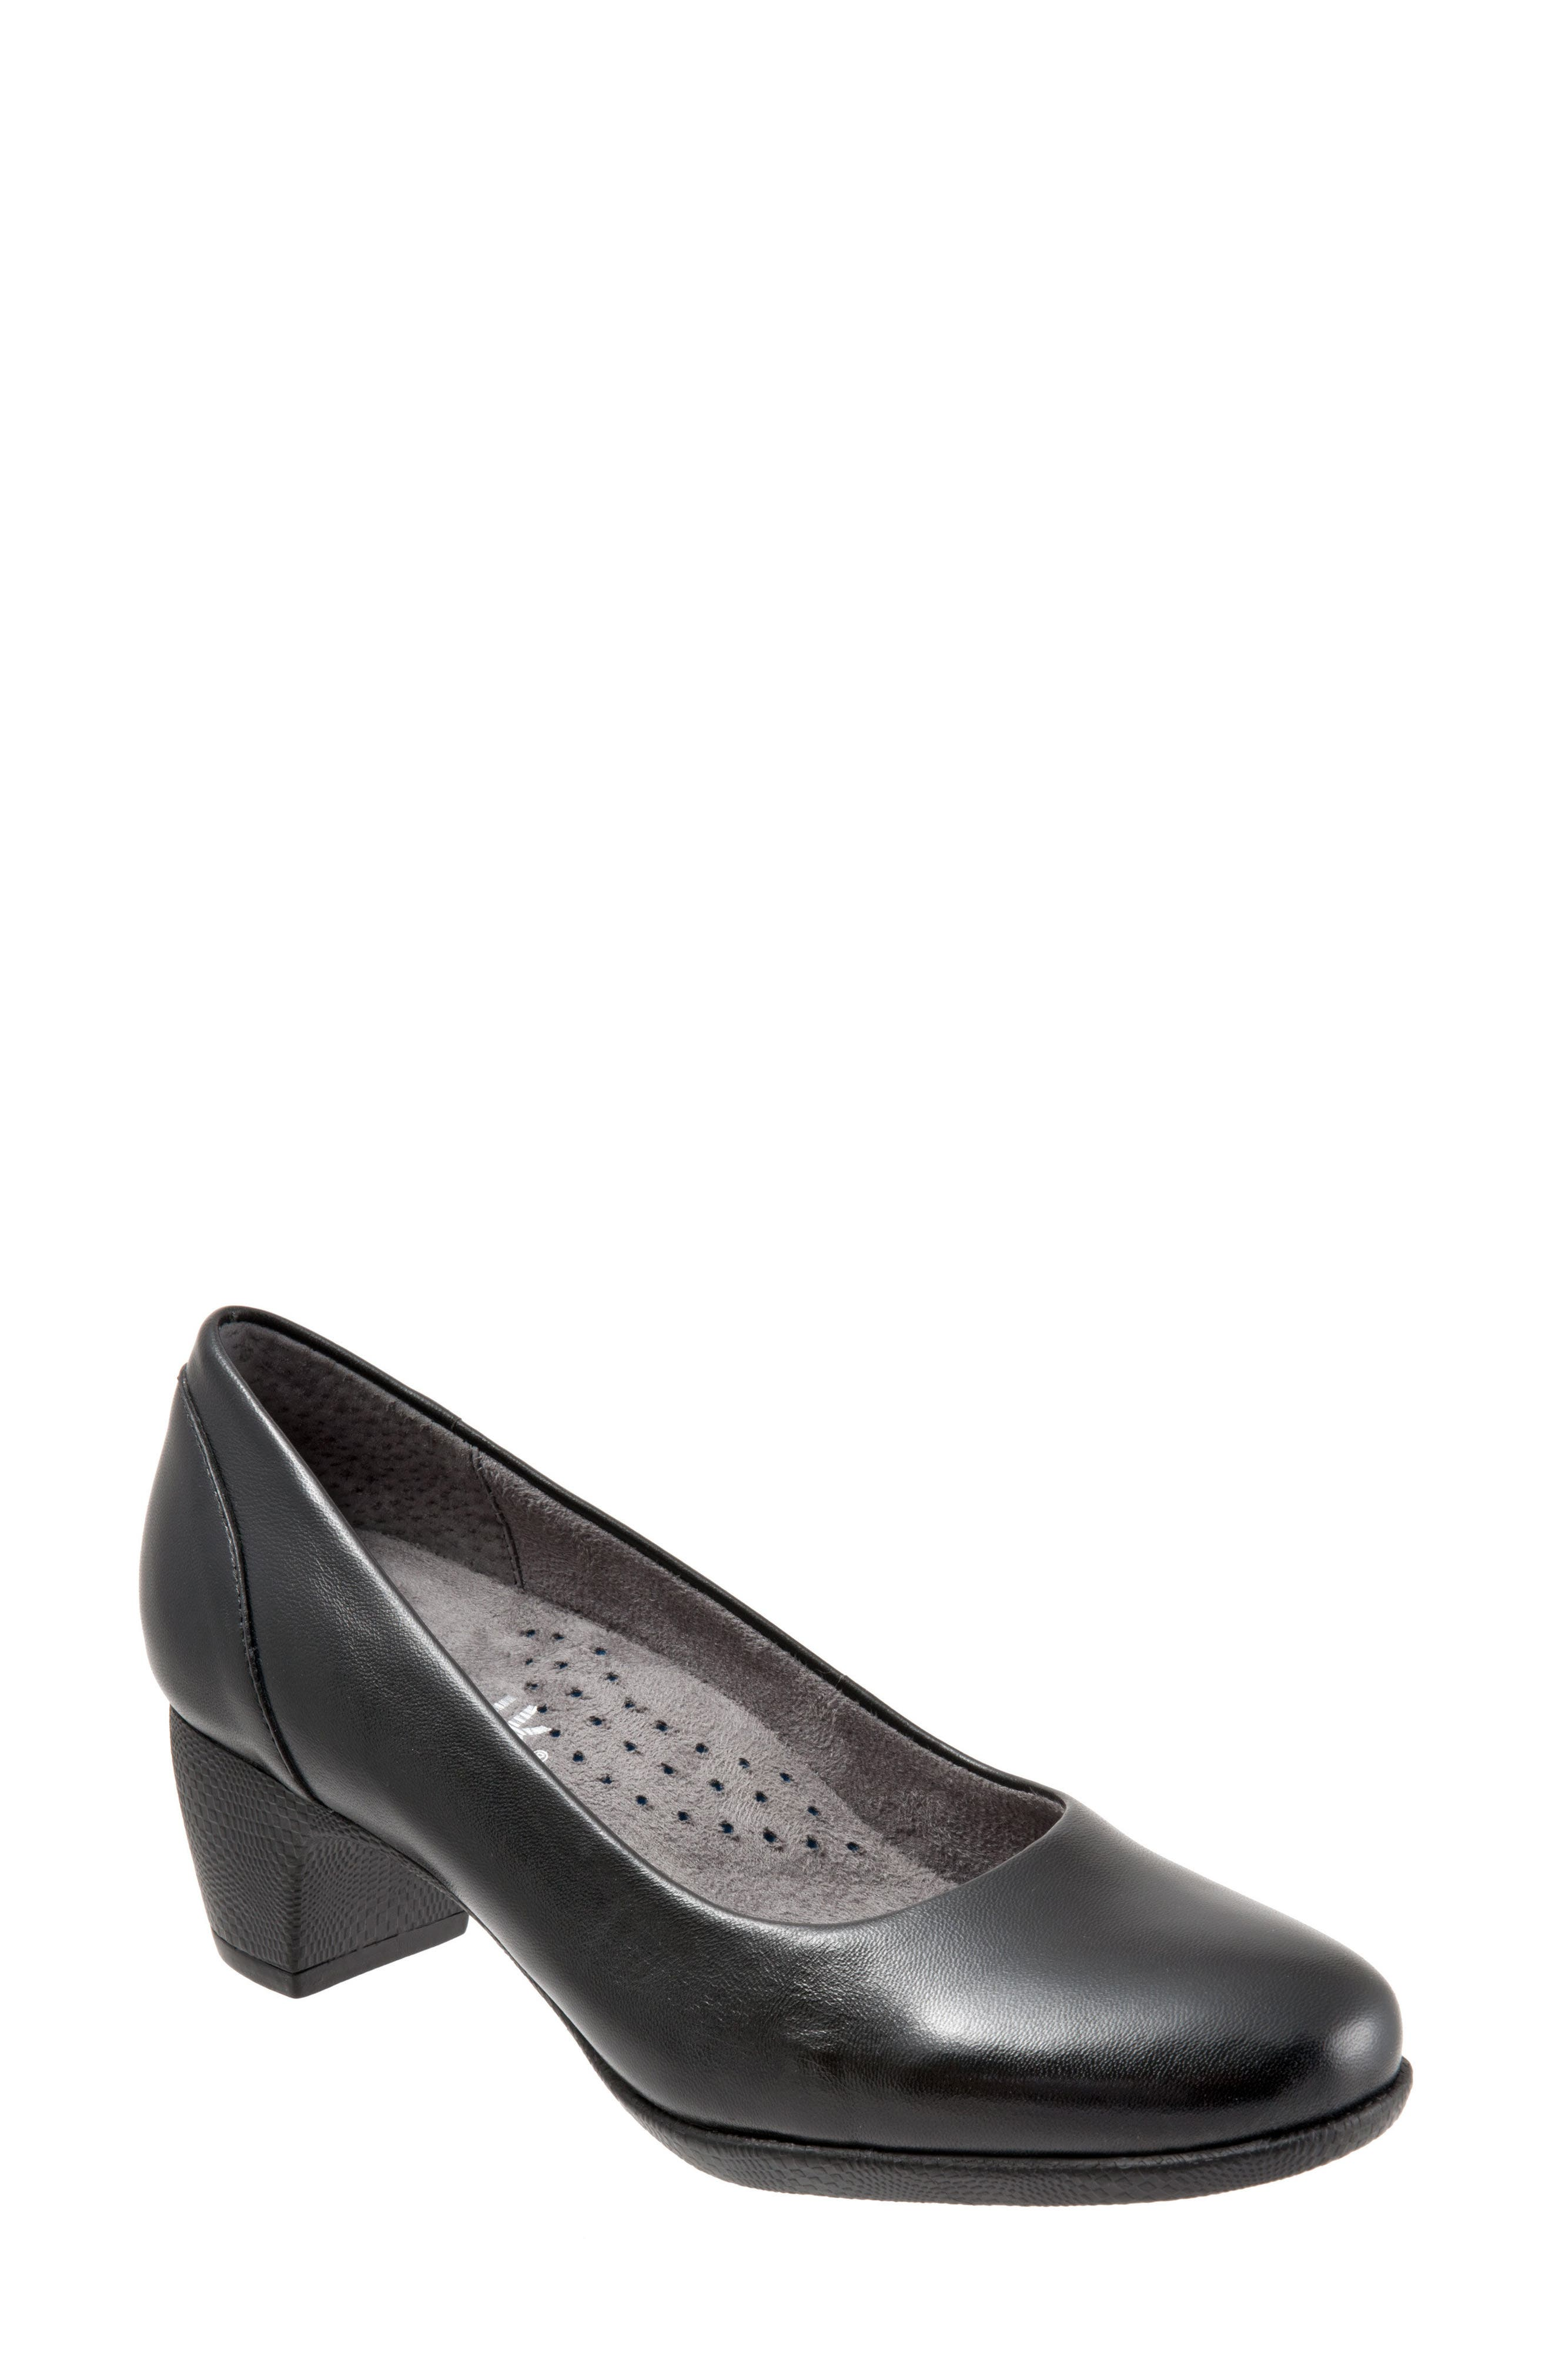 Imperial II Pump,                         Main,                         color, BLACK LEATHER